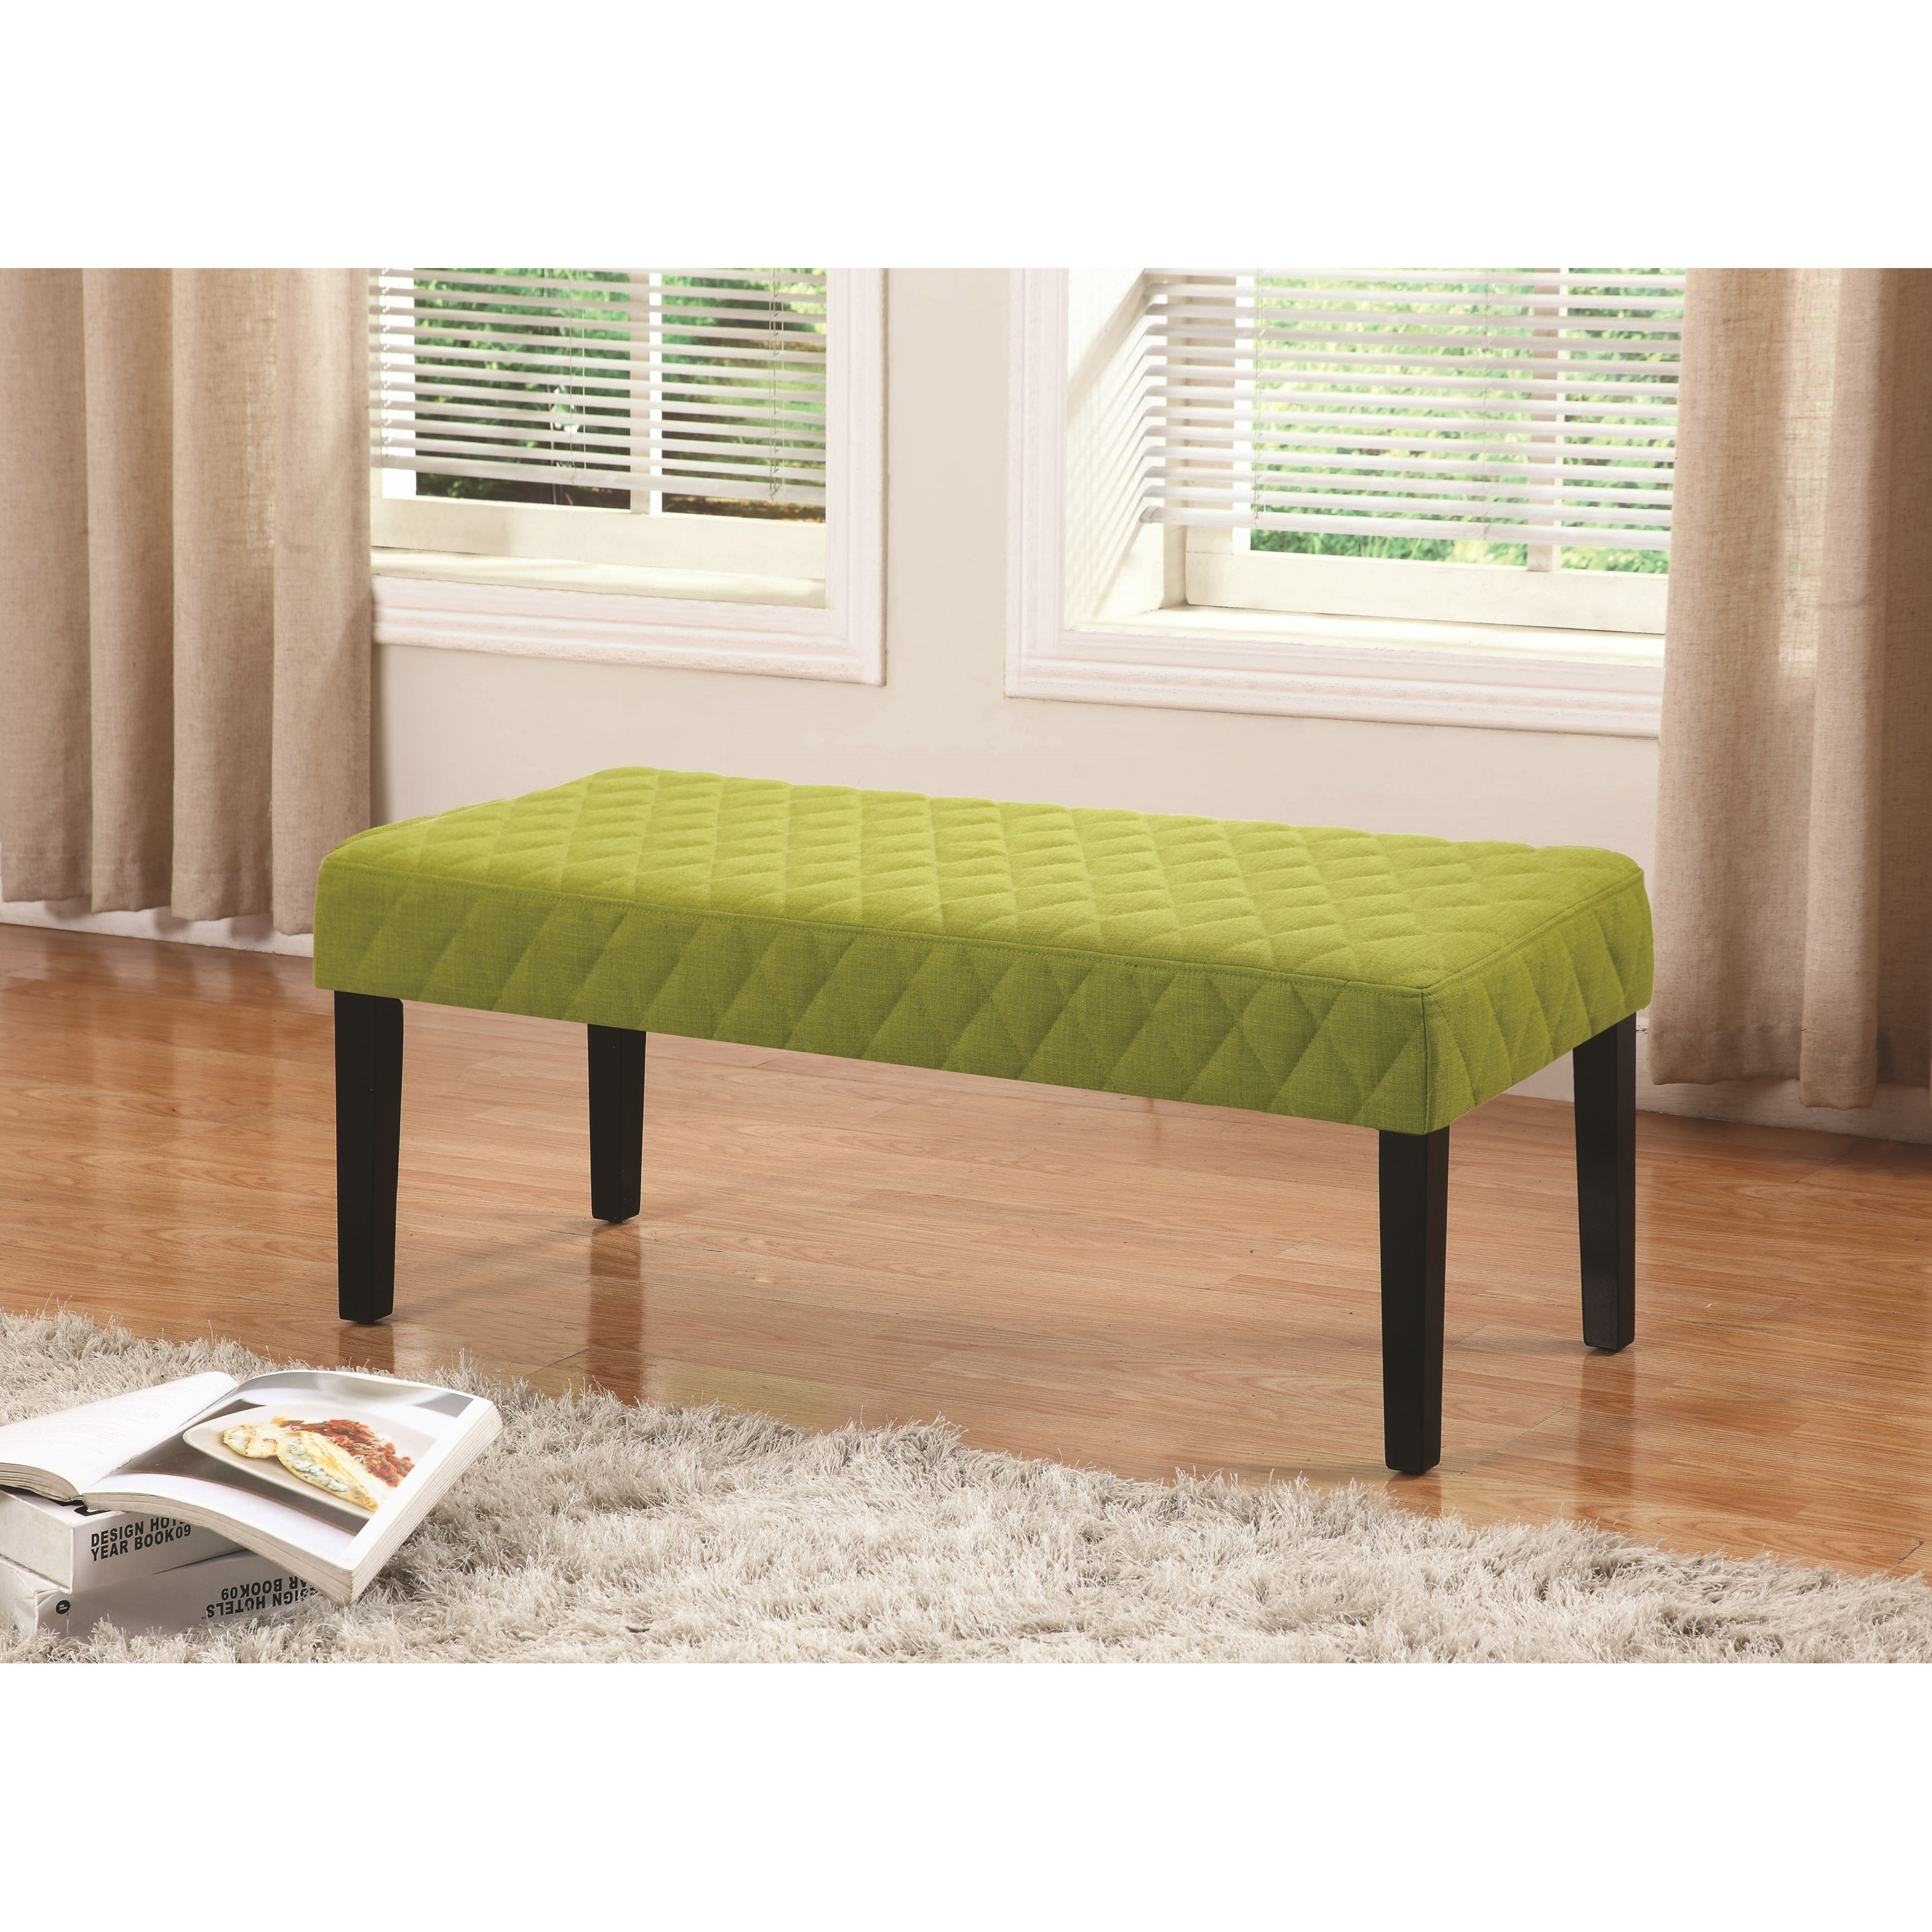 Coaster Benches Bench - Item Number: 500289